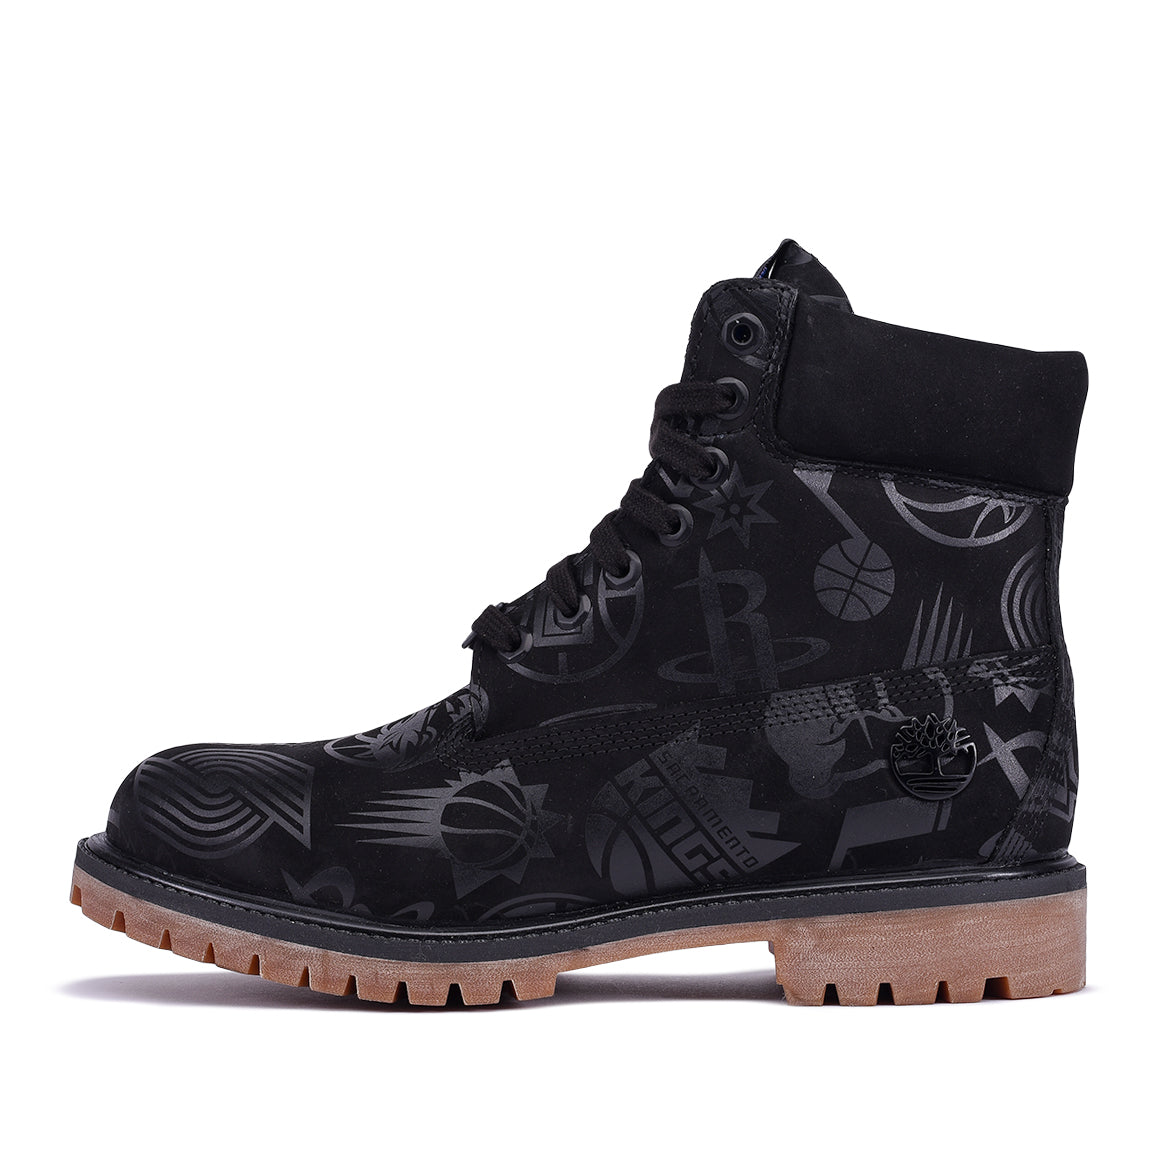 "NBA x TIMBERLAND 6"" PREMIUM BOOT ""EAST VS. WEST"""